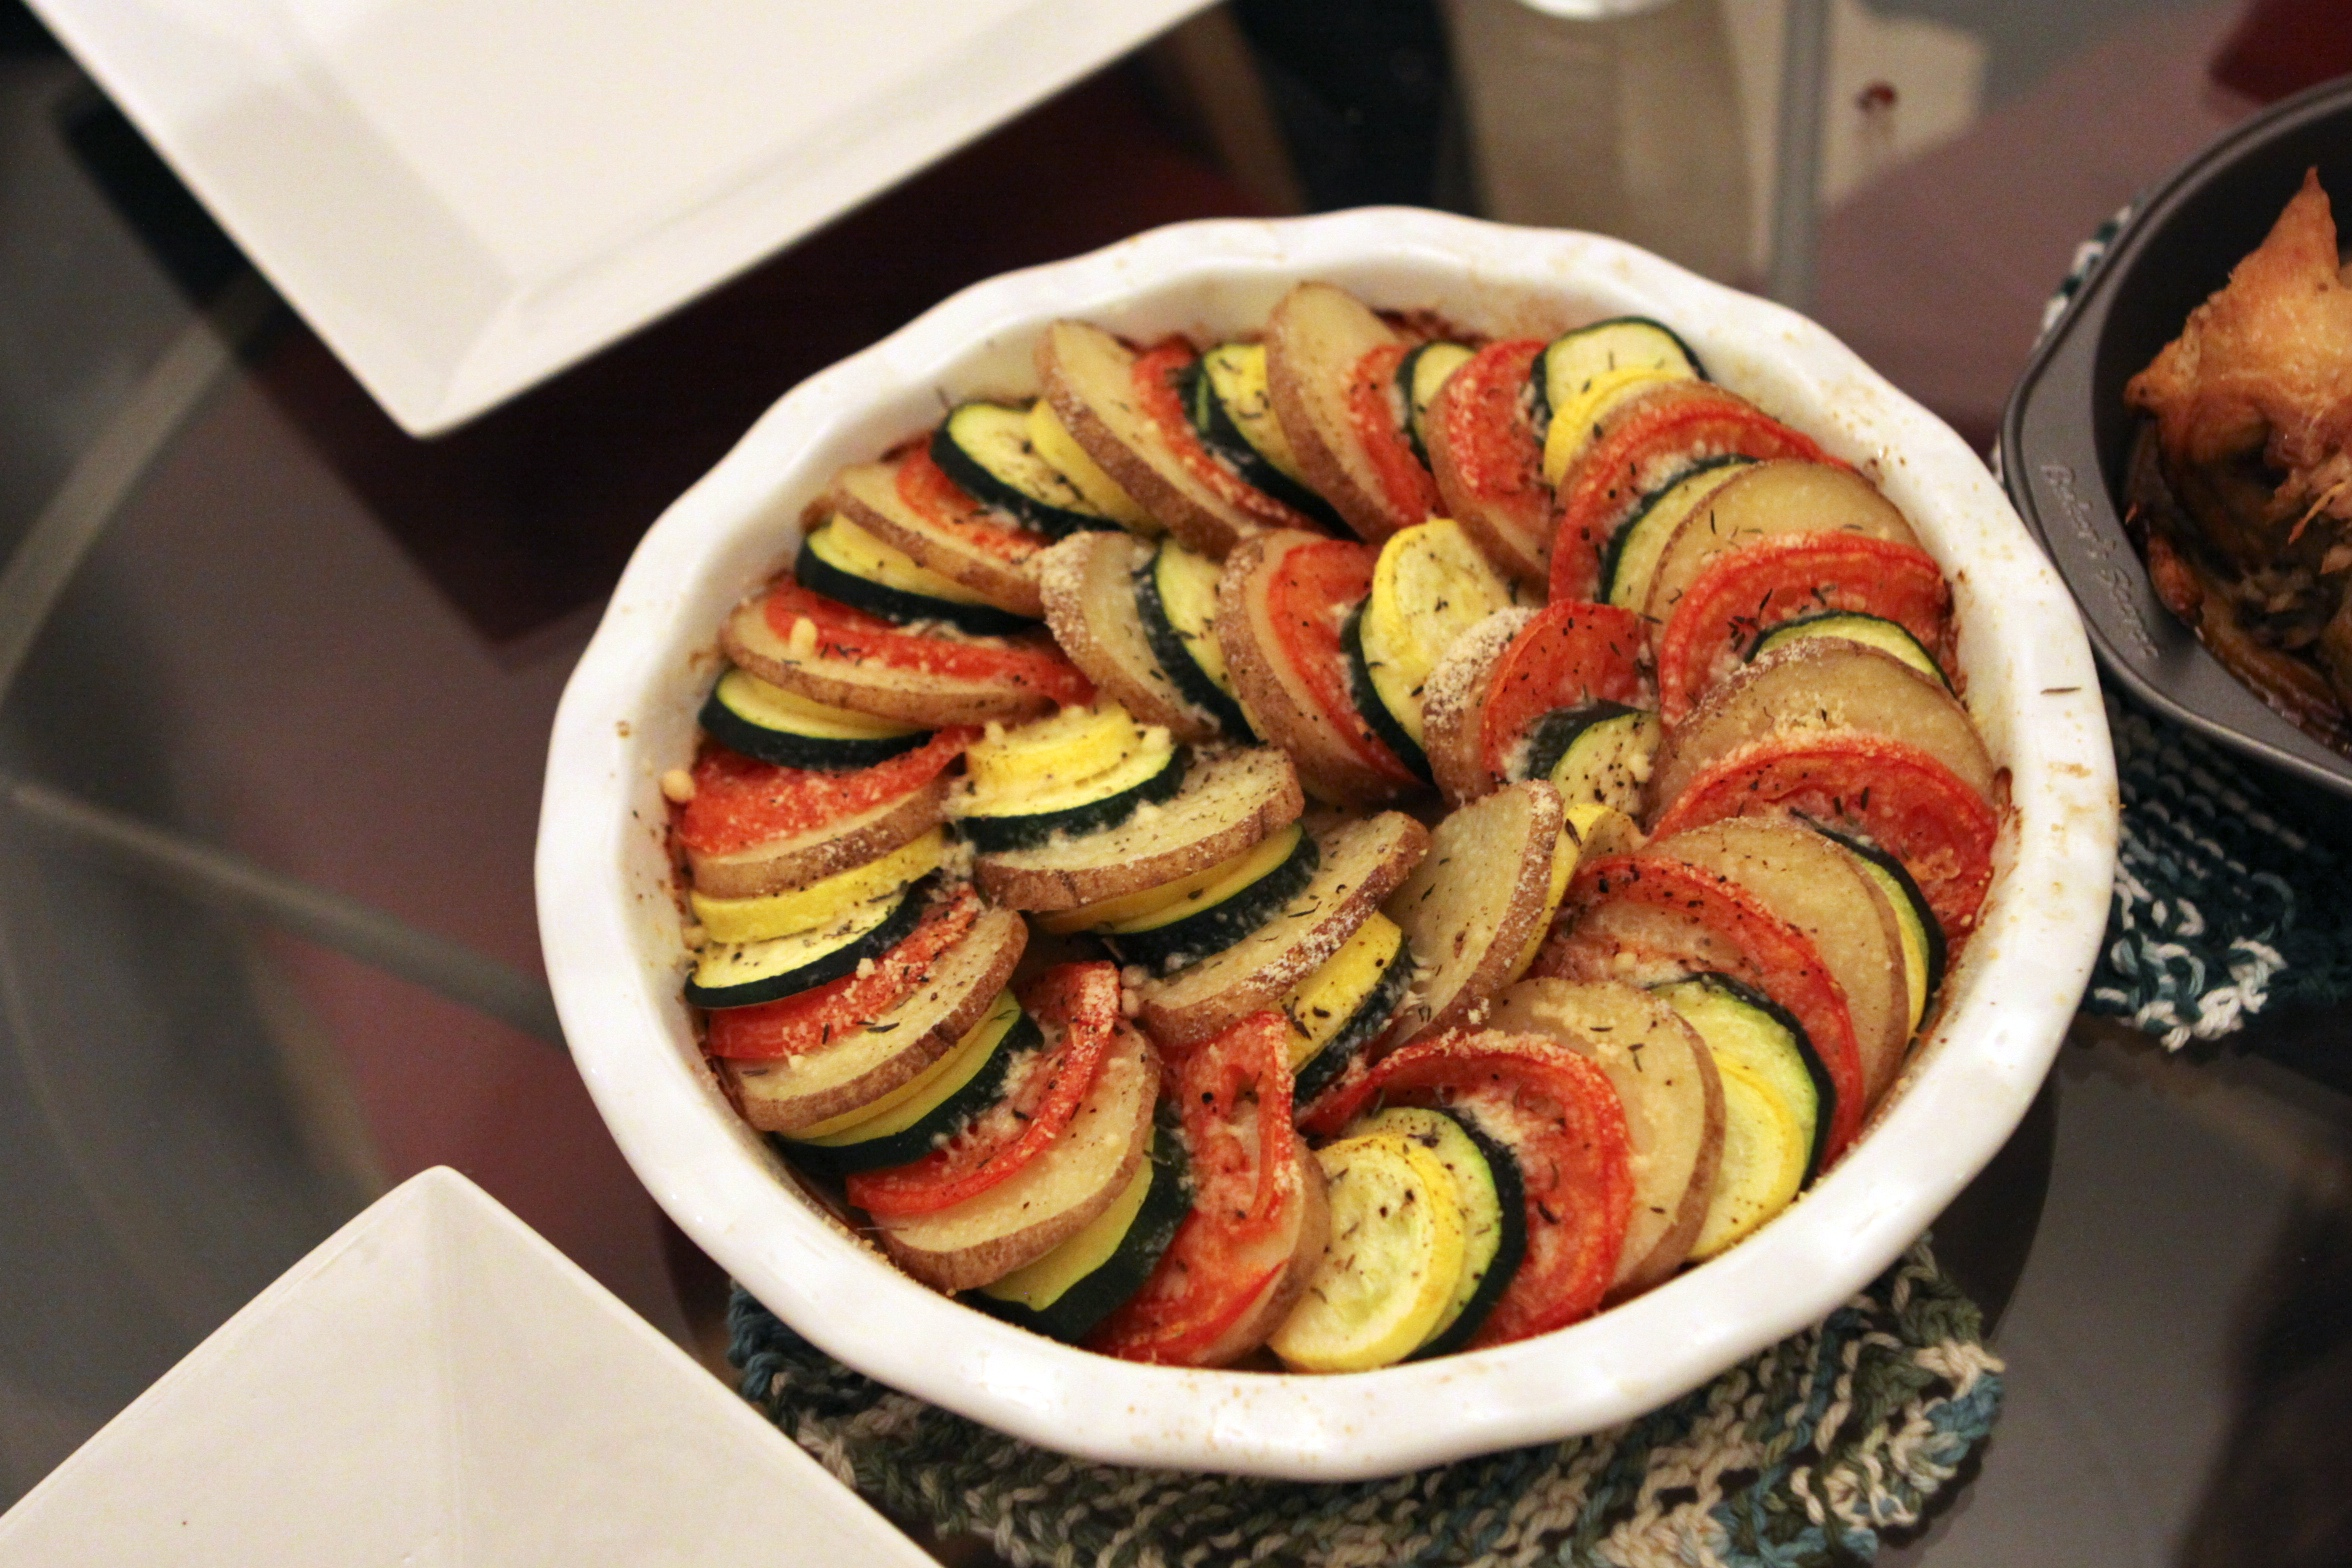 ... Barefoot Contessa's Vegetable Tian | Ruth E Hendricks Photography